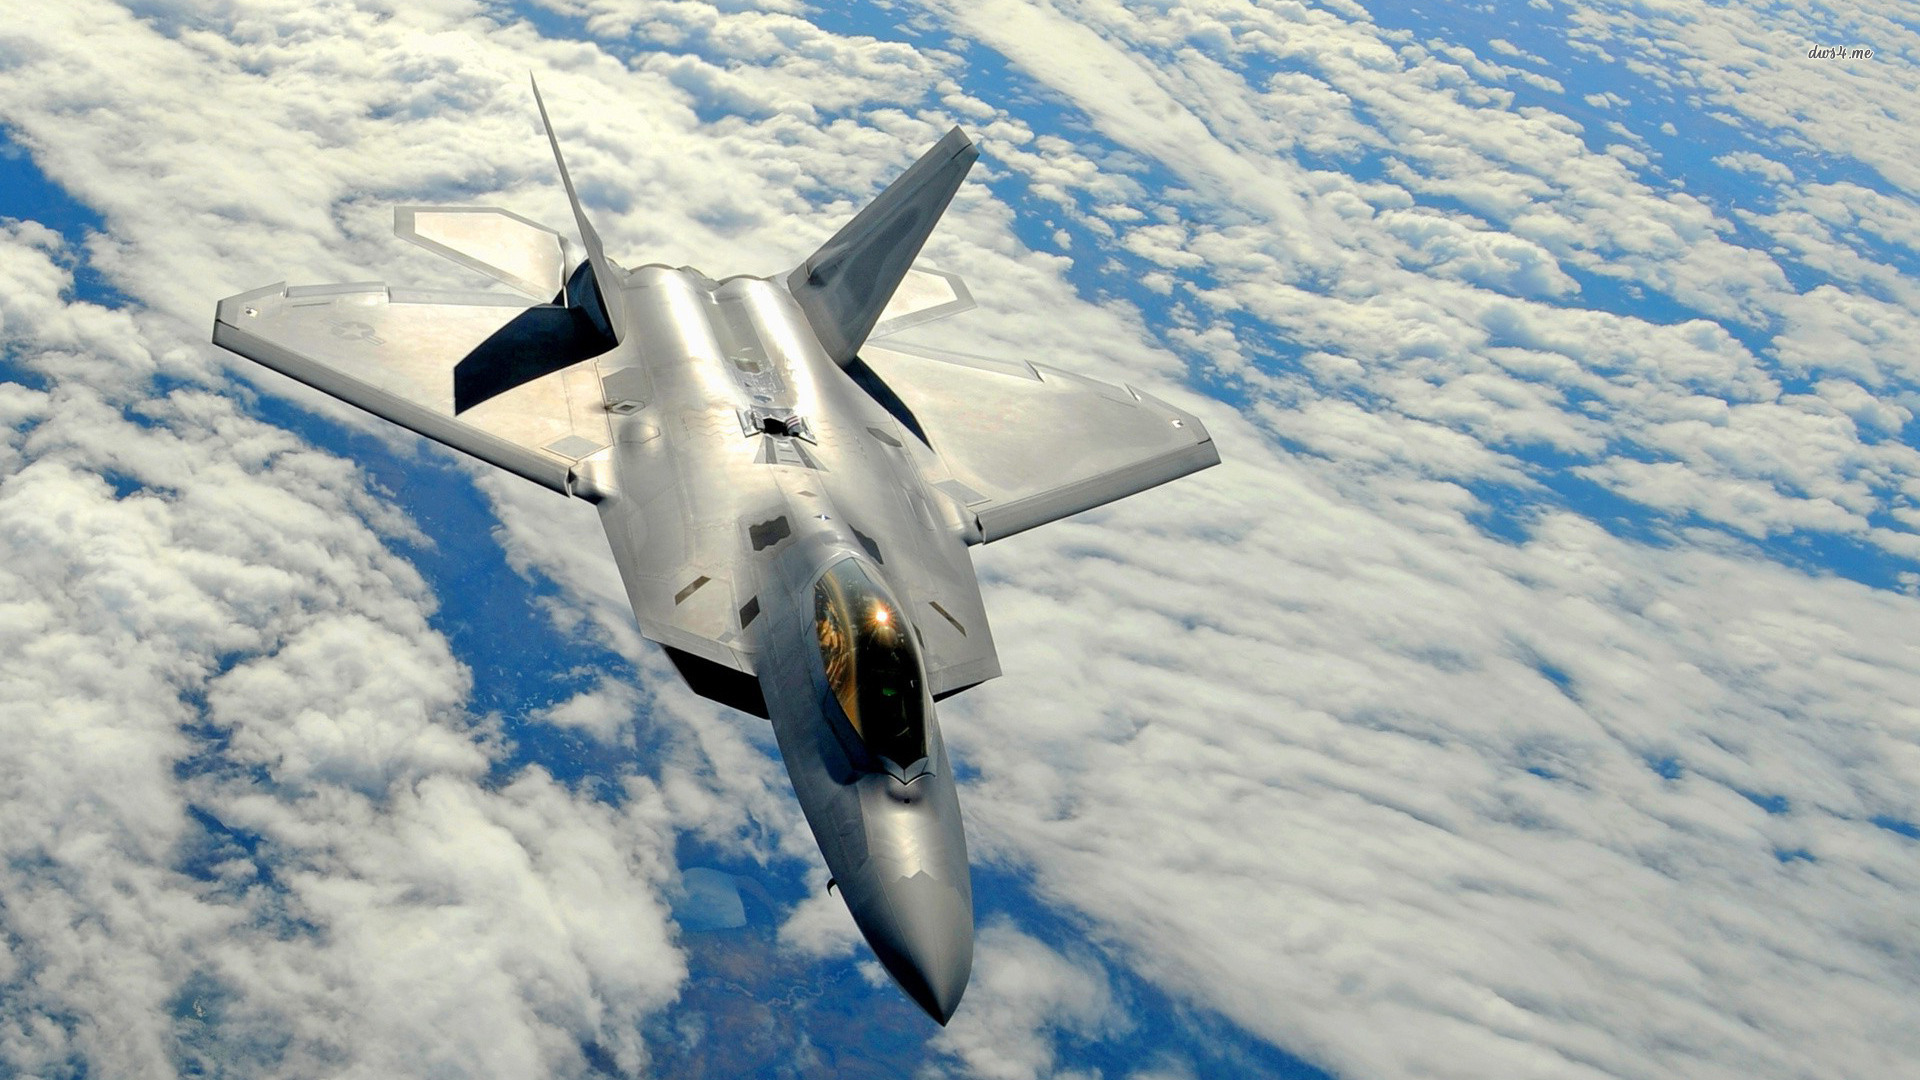 [45+] F 22 Raptor Wallpaper 1920x1080 on WallpaperSafari